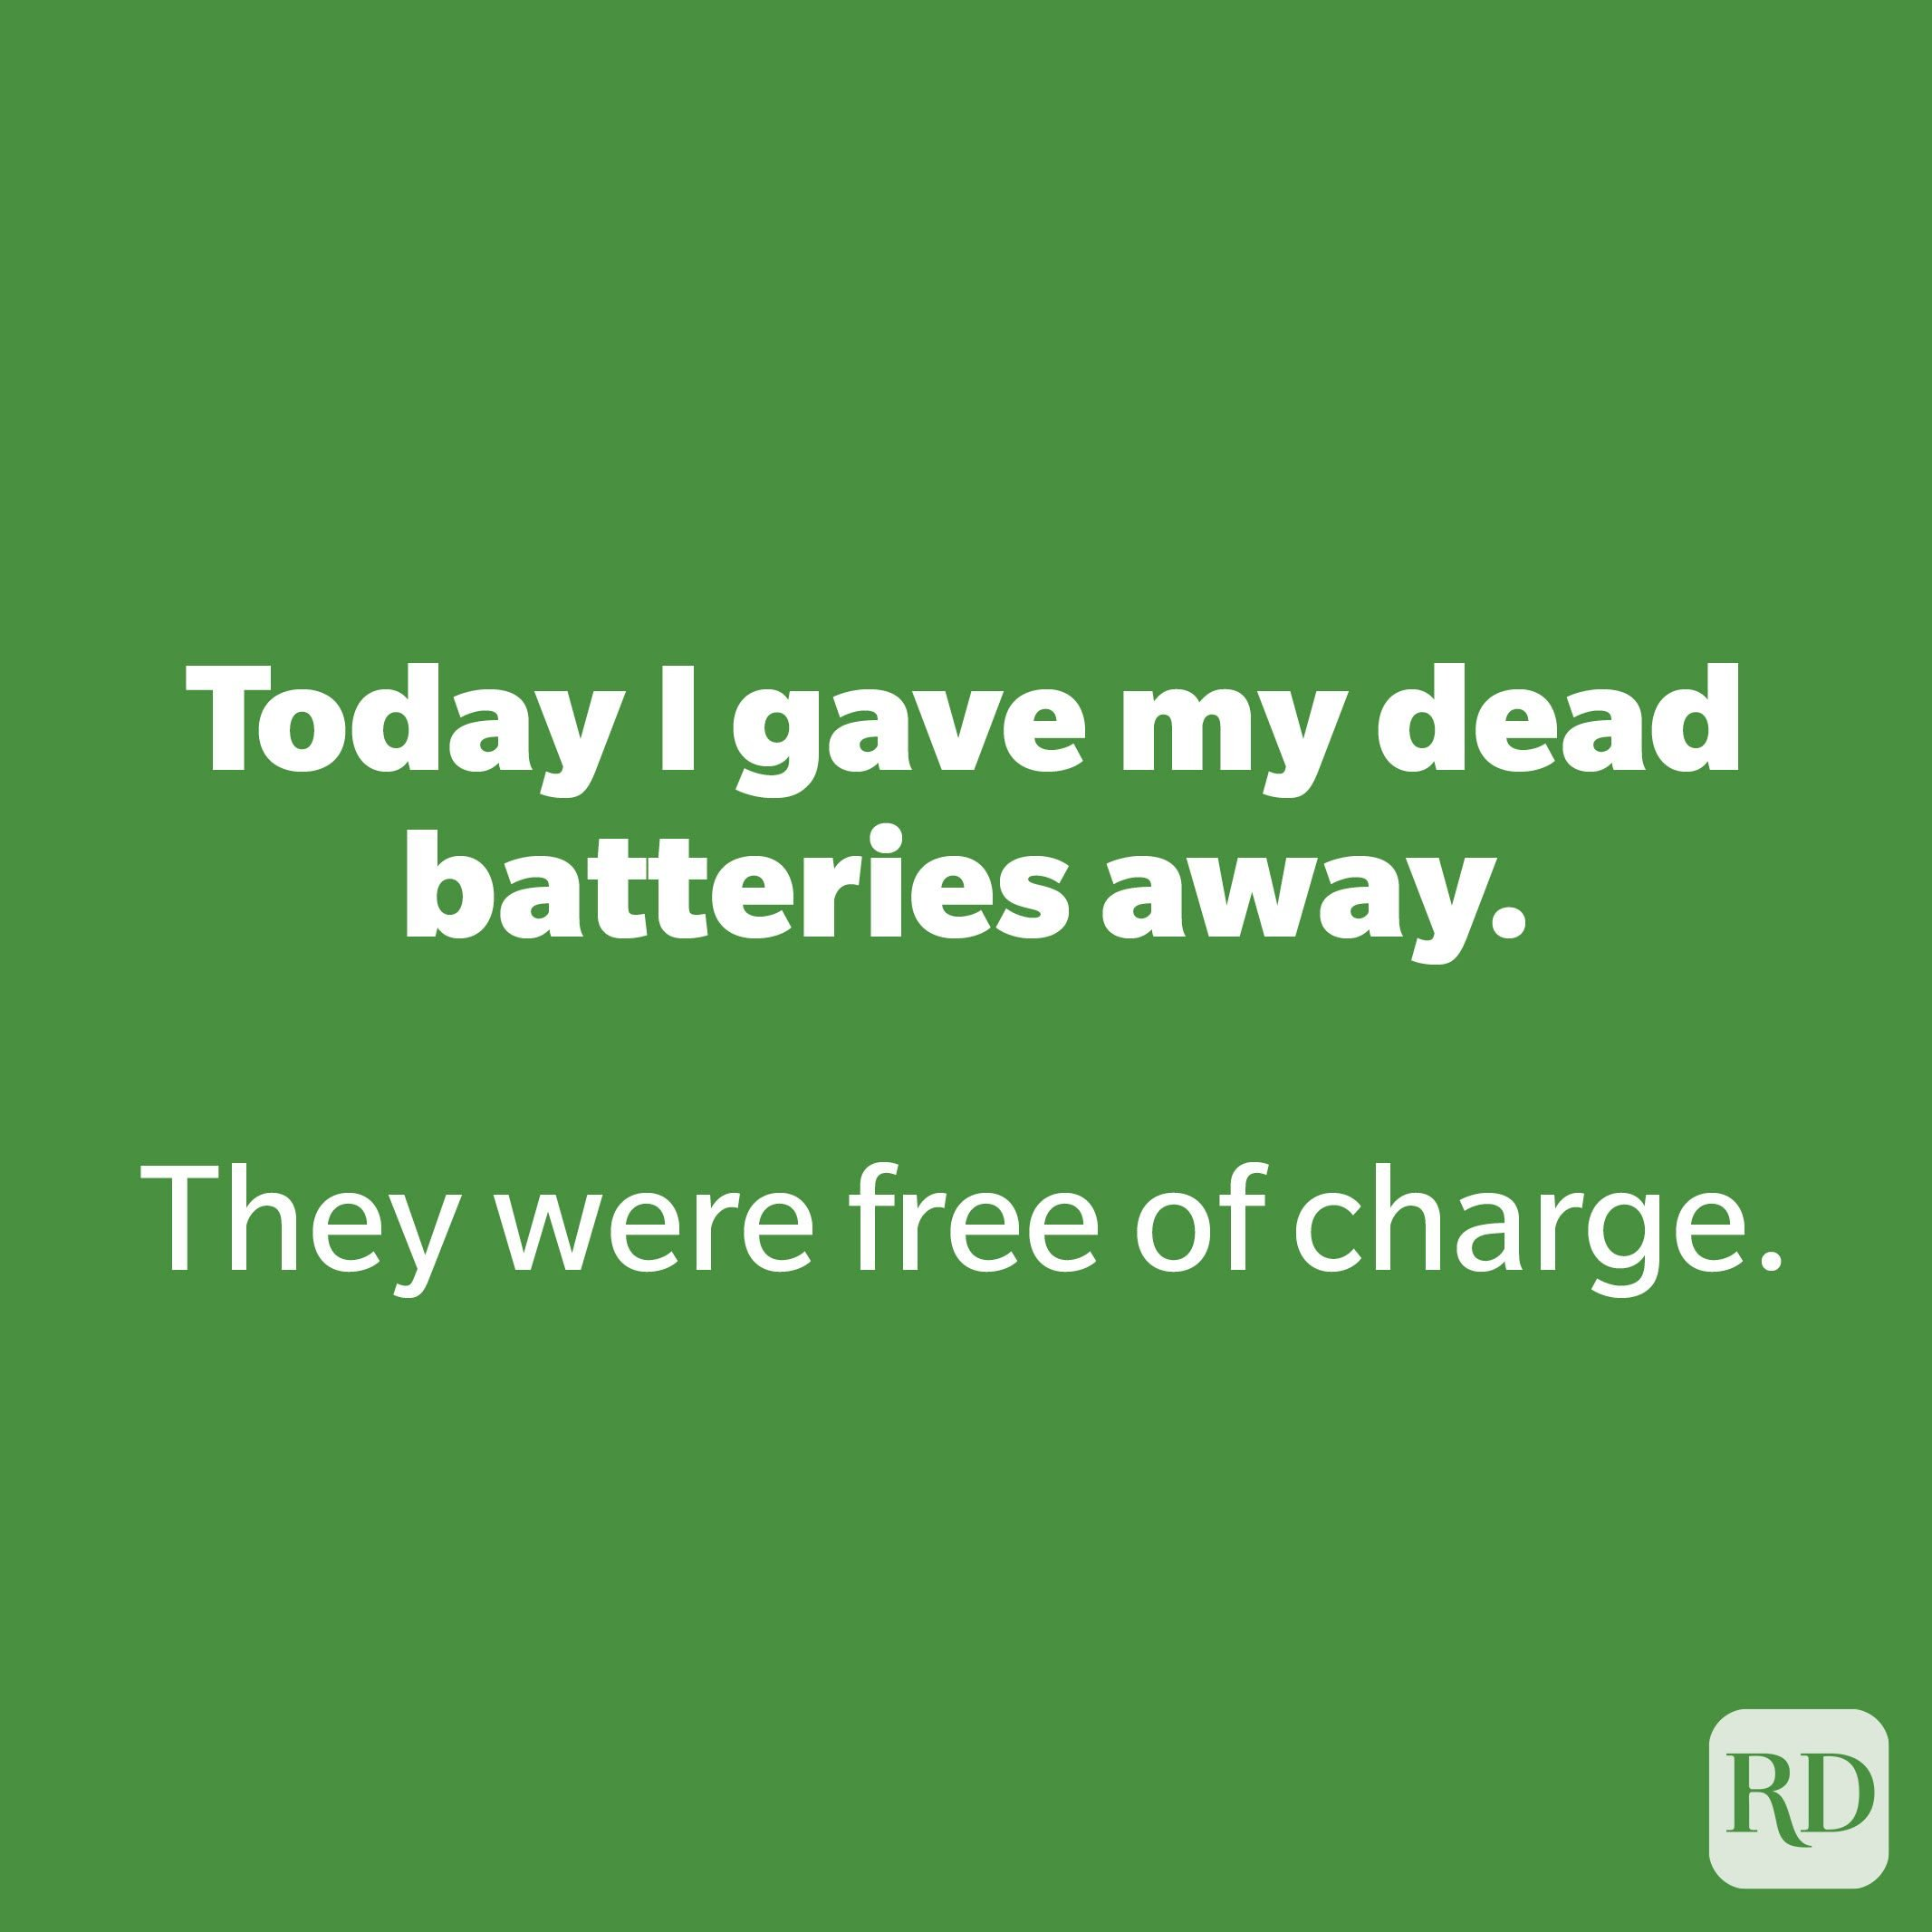 Today I gave my dead batteries away.